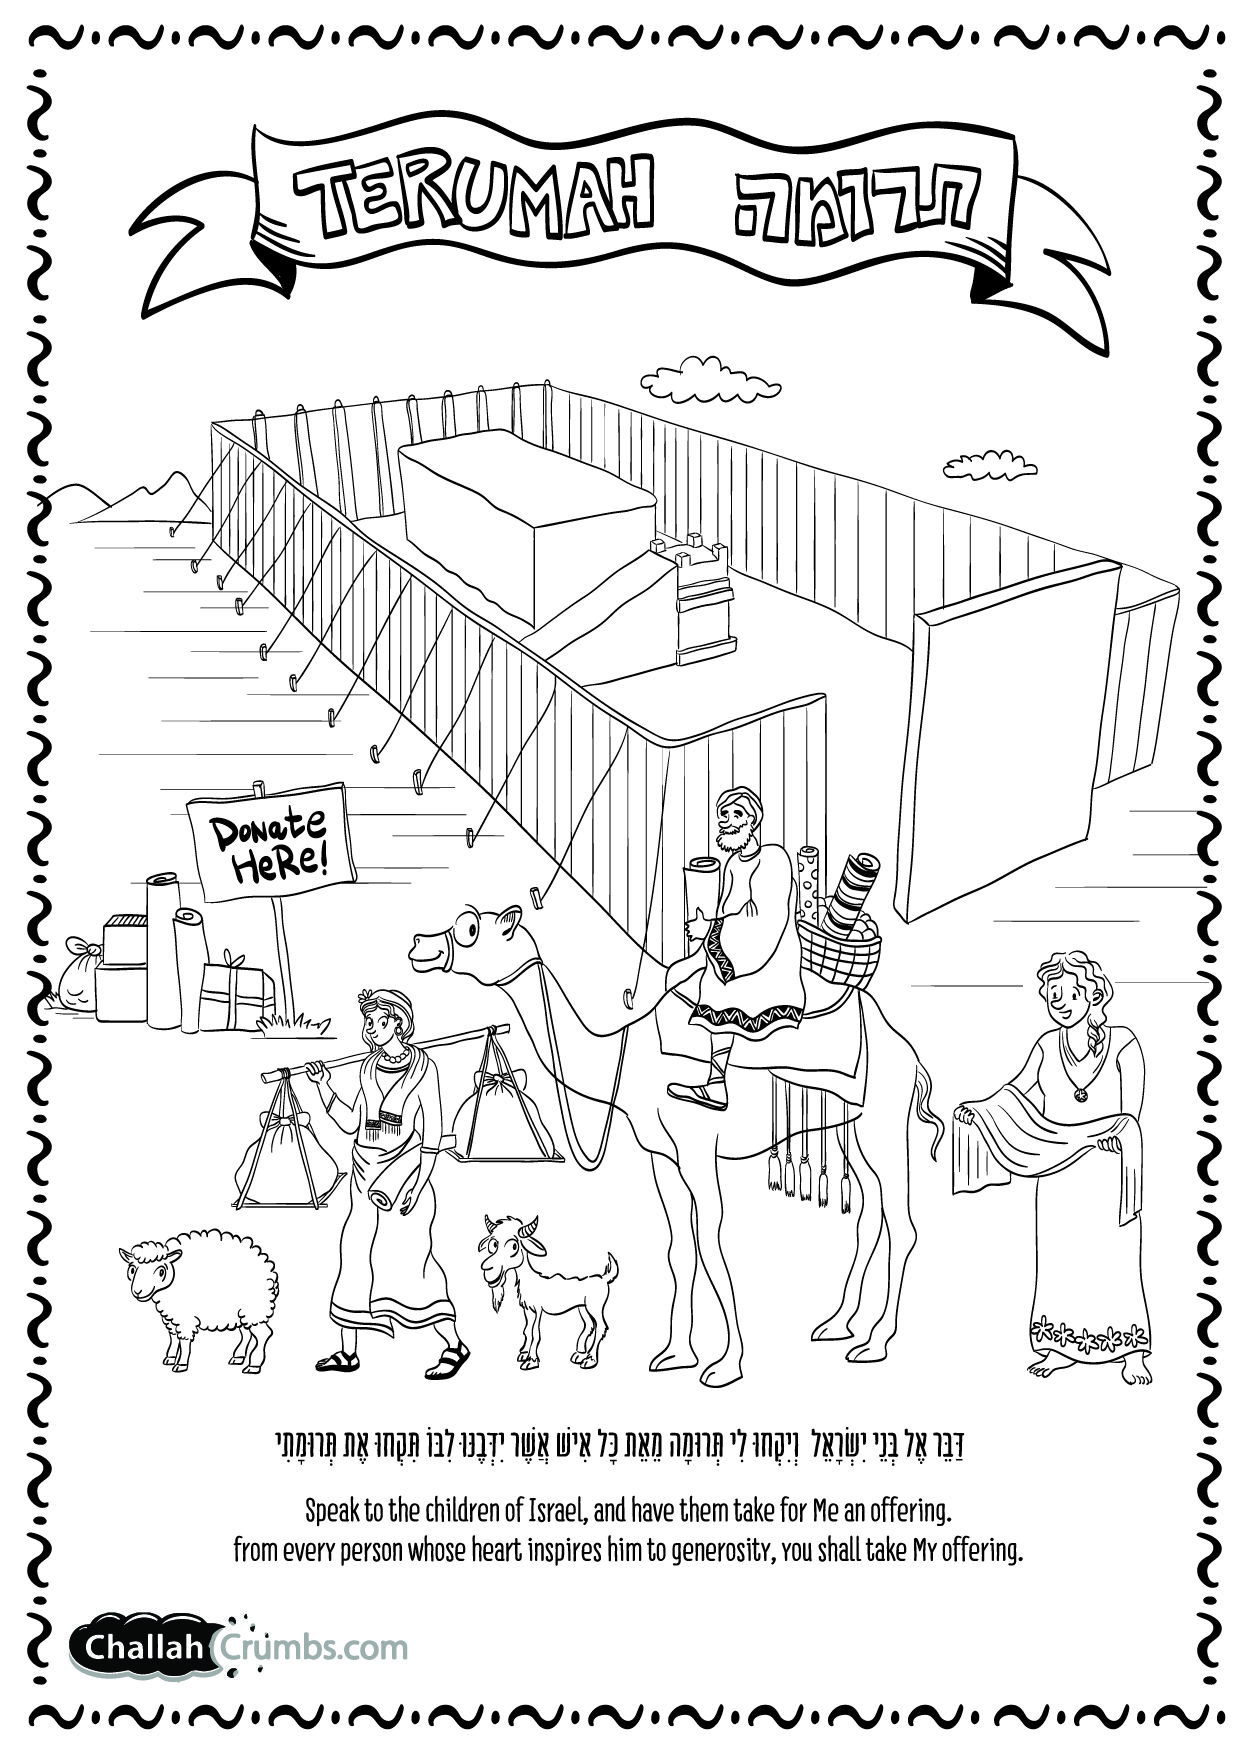 The Tabernacle In Wilderness Coloring Pages Coloring Pages